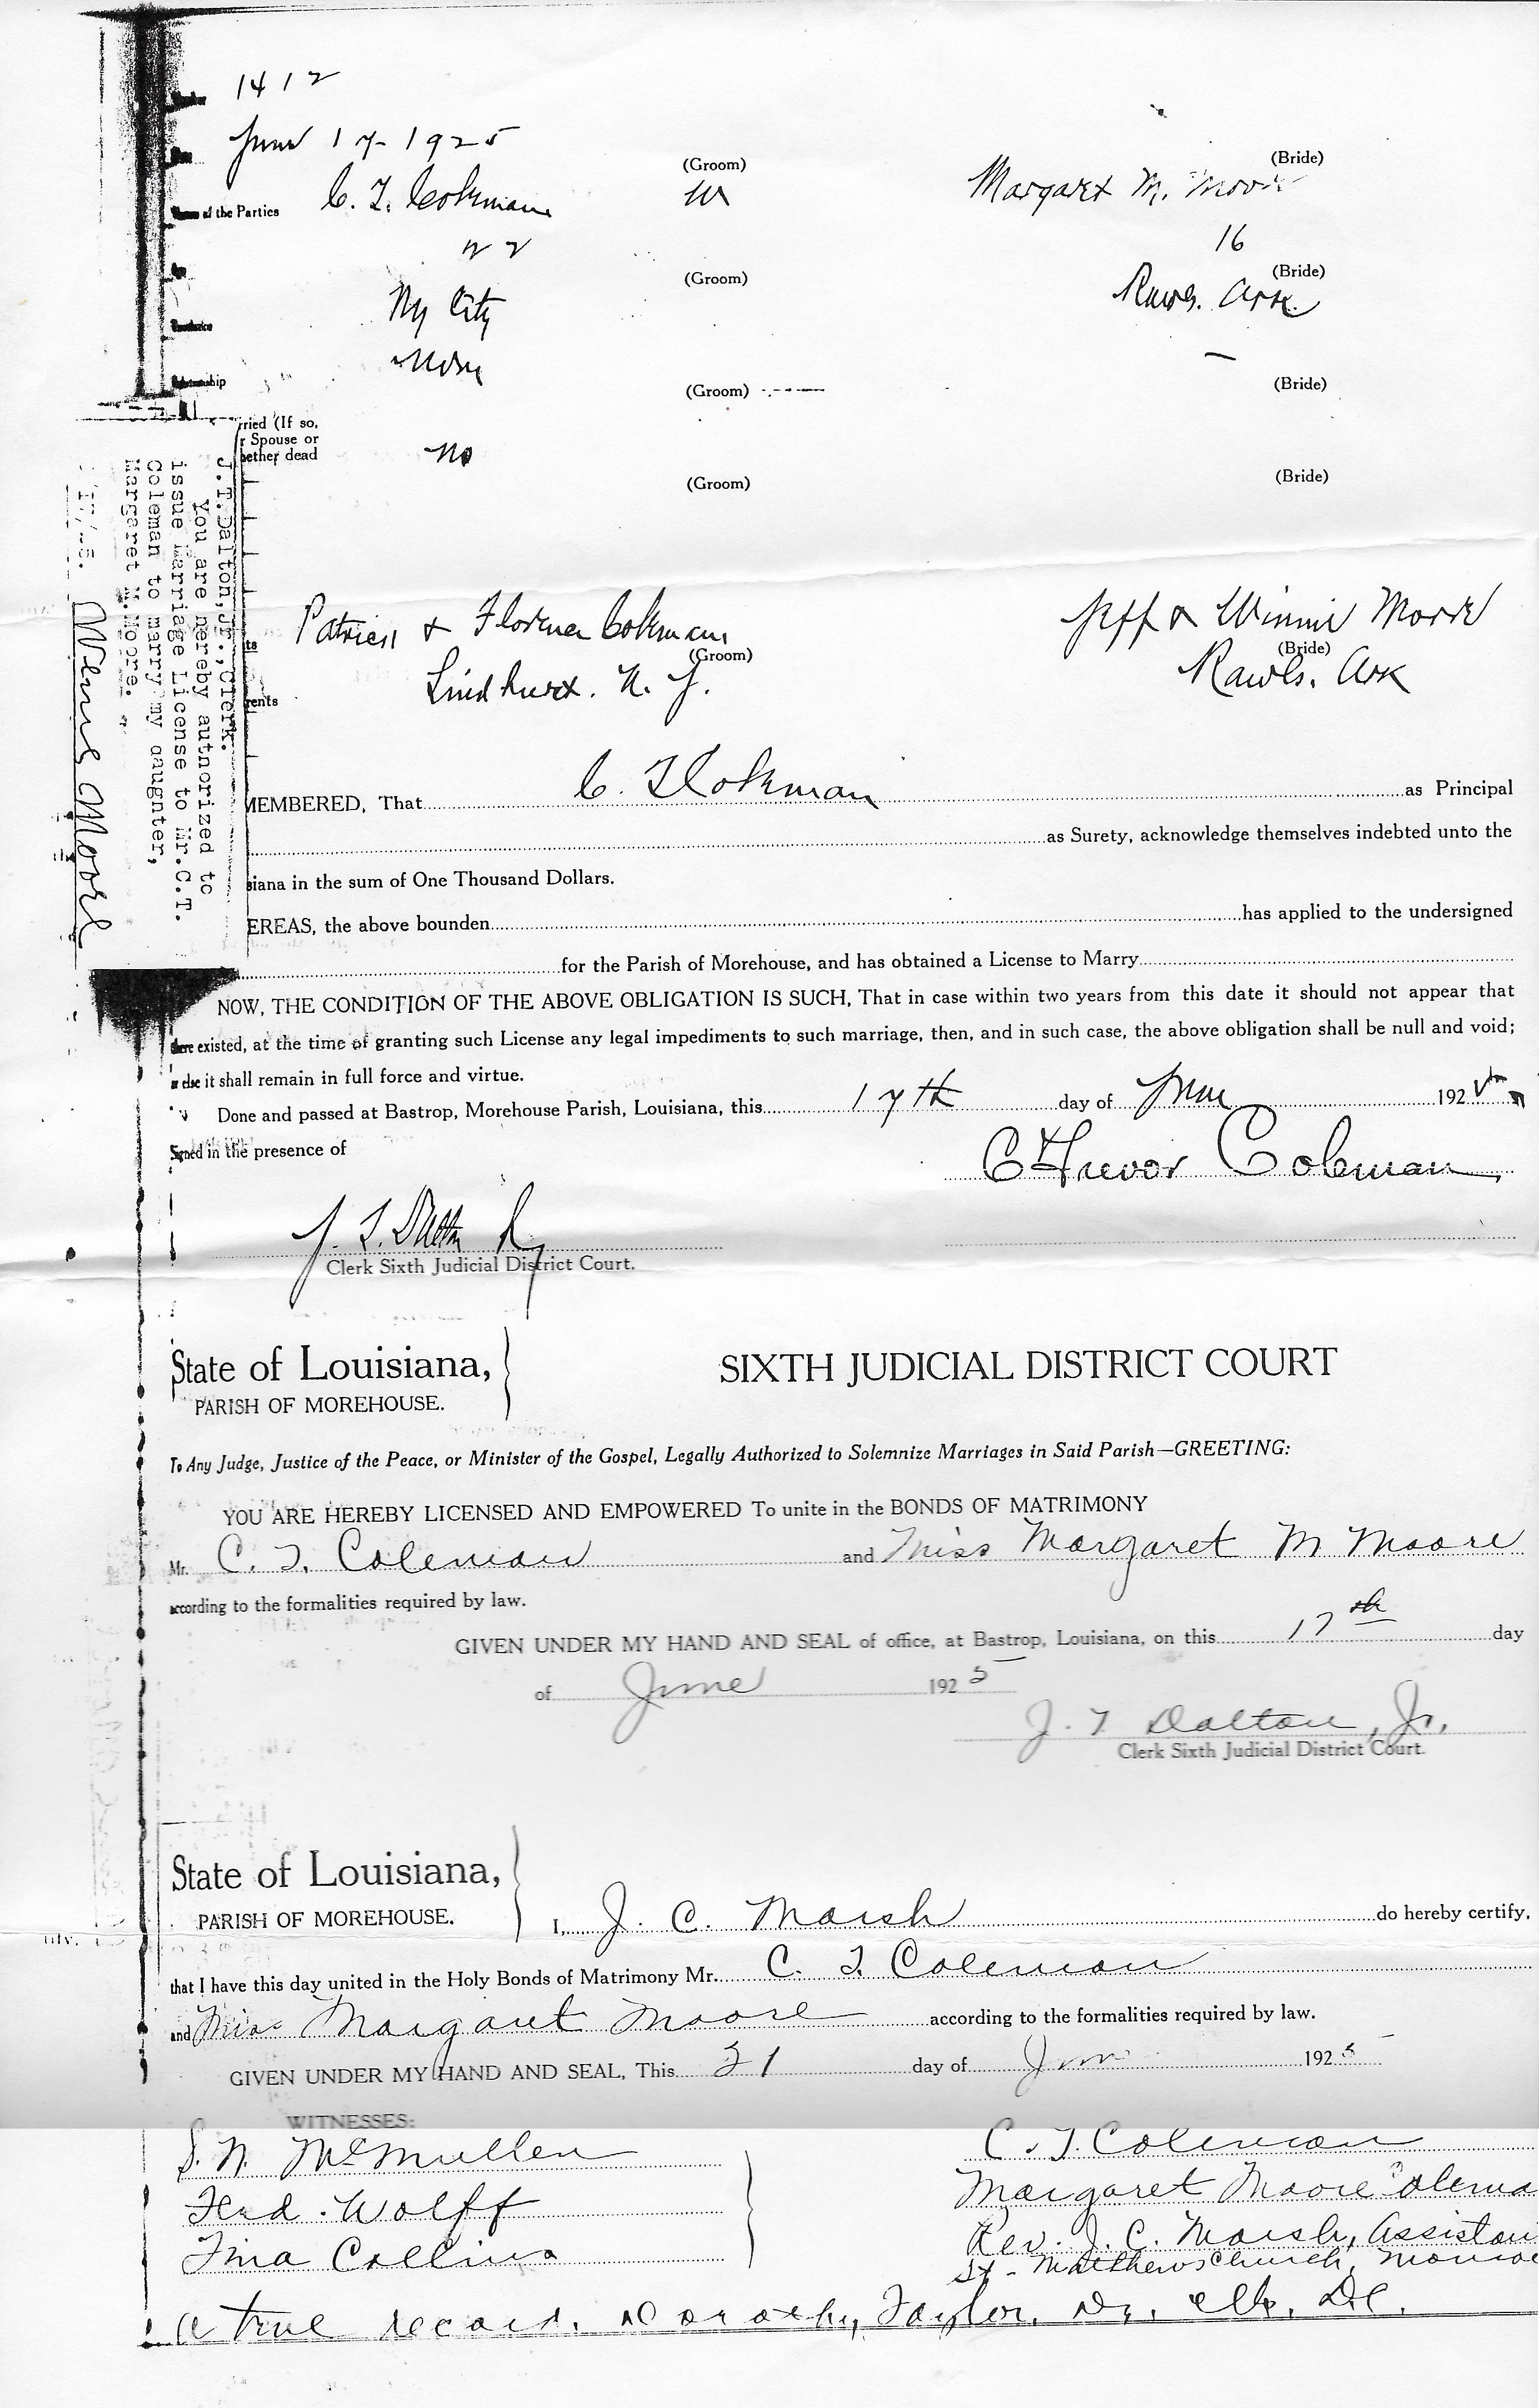 Marriage Certificate For Charles Coleman And Margaret Moore